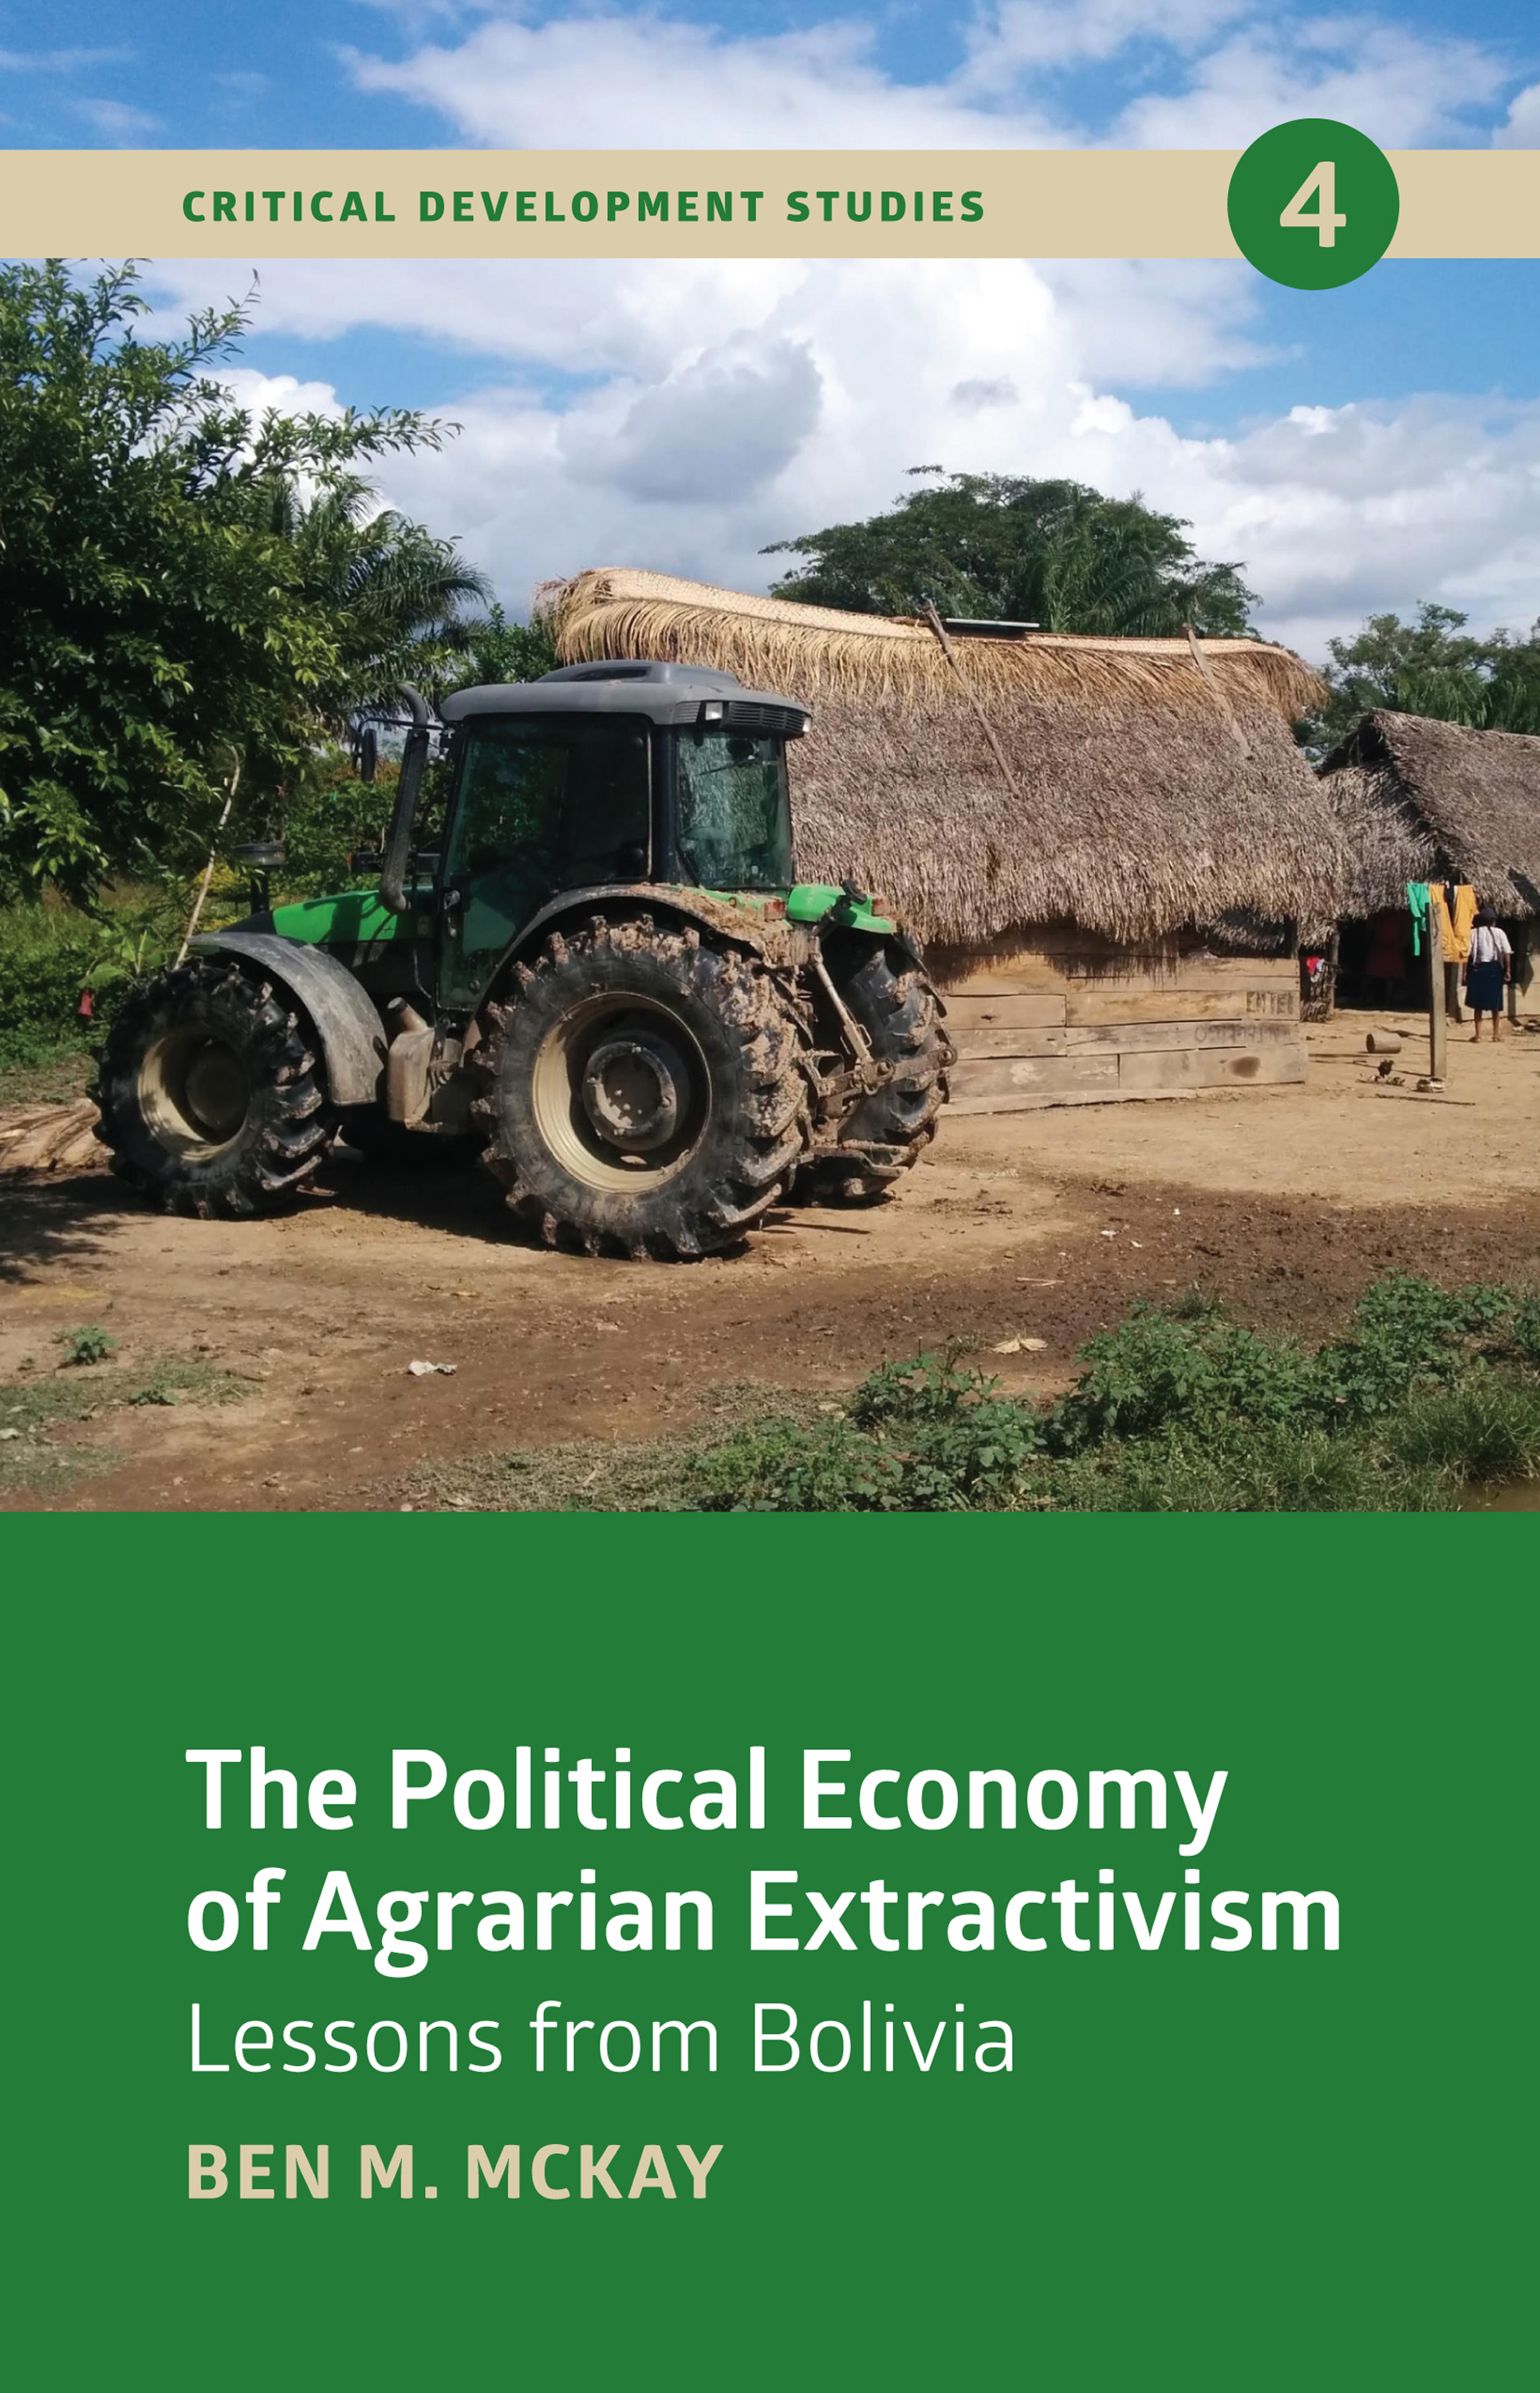 The Political Economy of Agrarian Extractivism